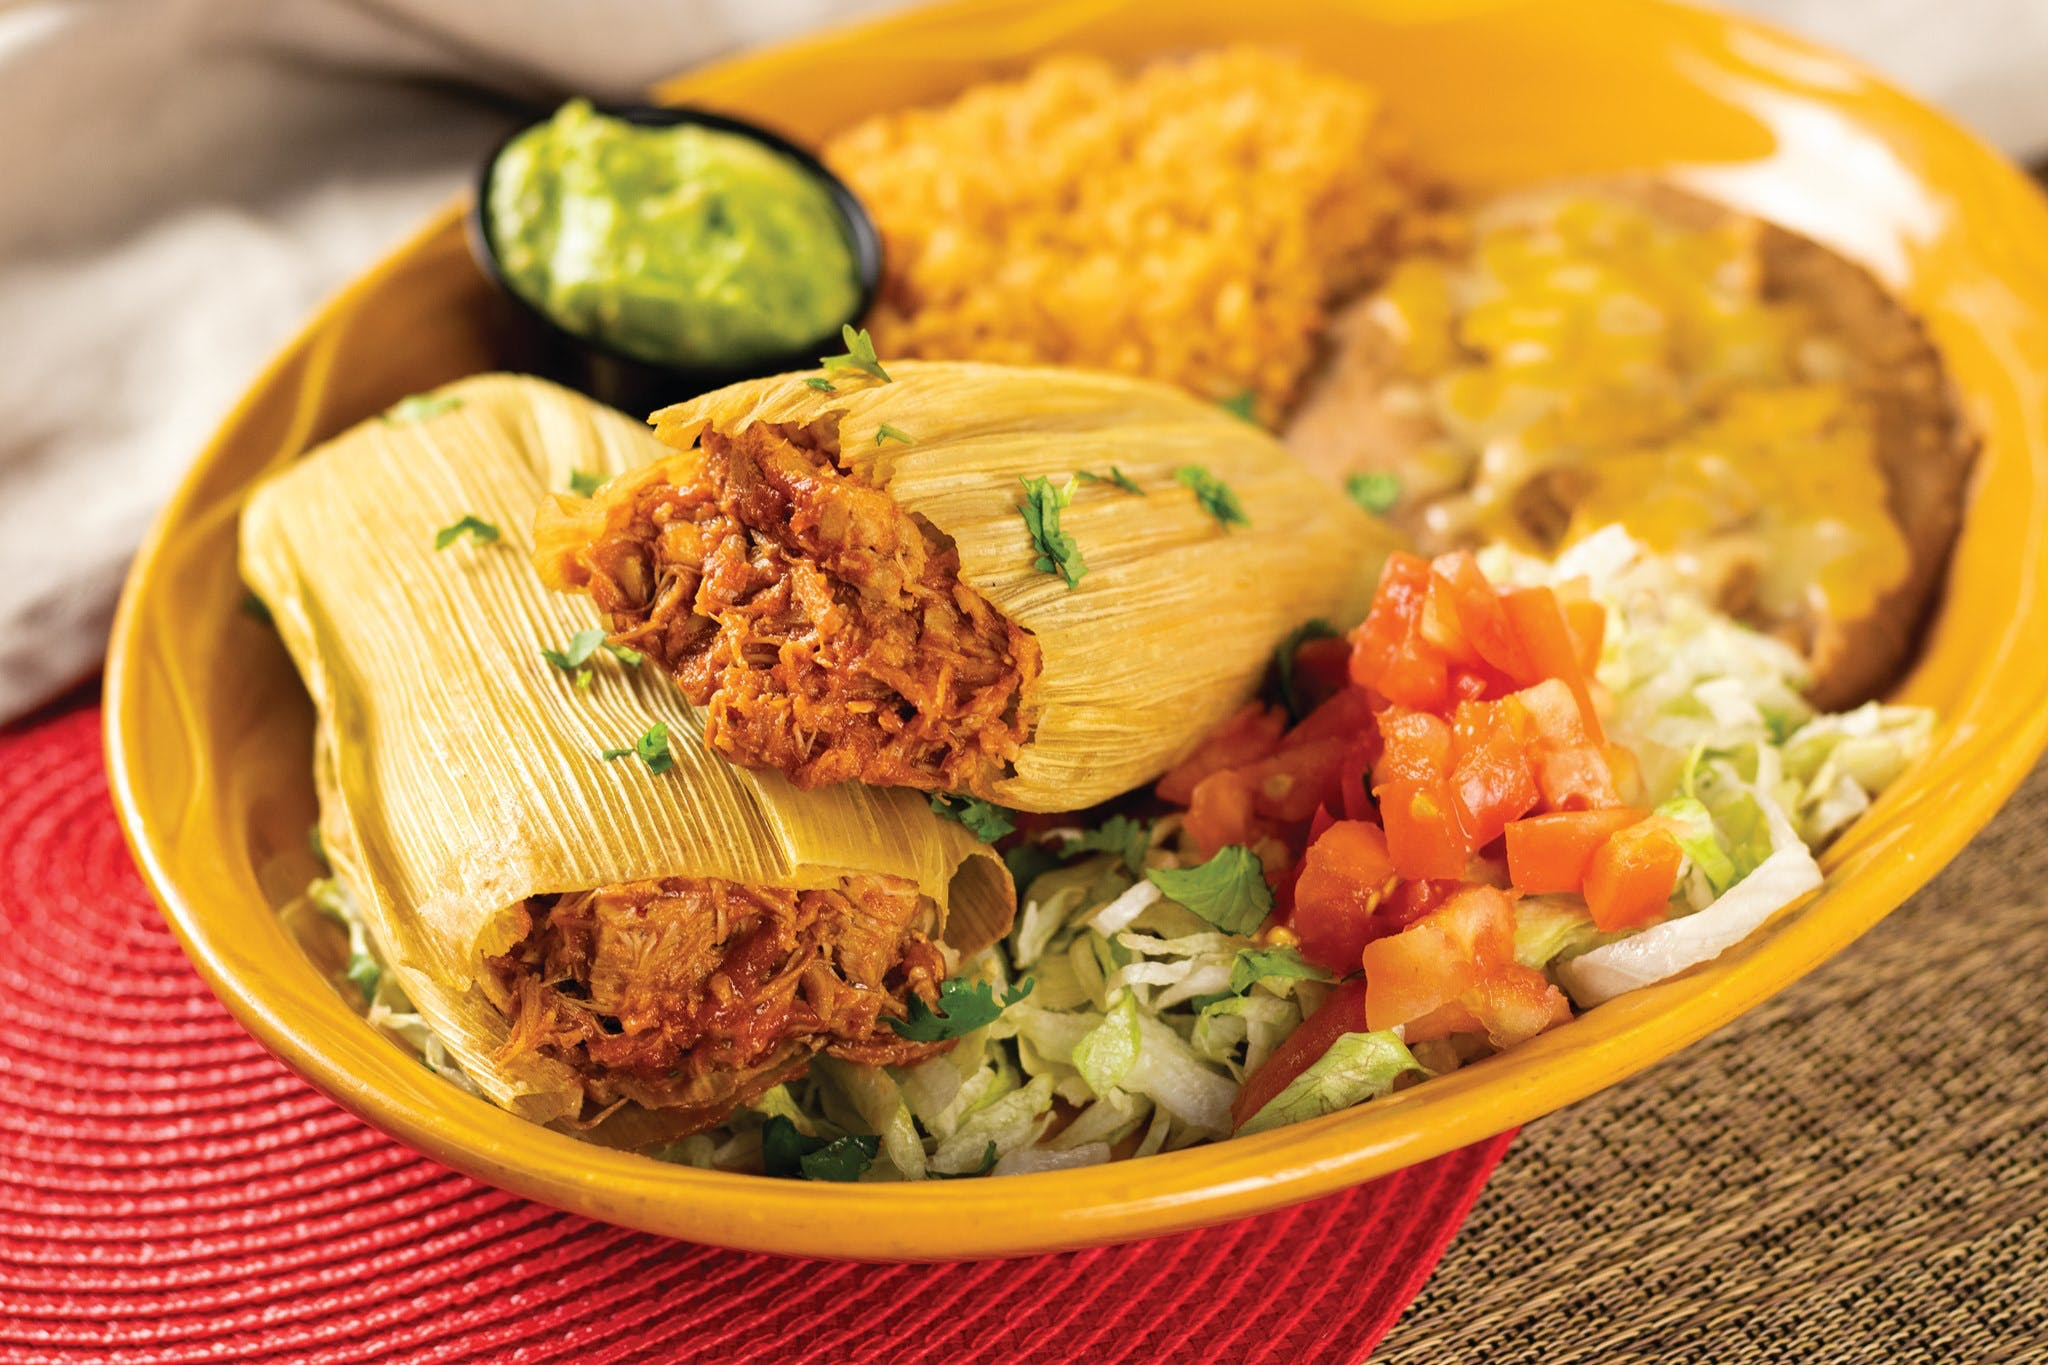 Margarita's Famous Mexican Food & Cantina in Green Bay - Highlight